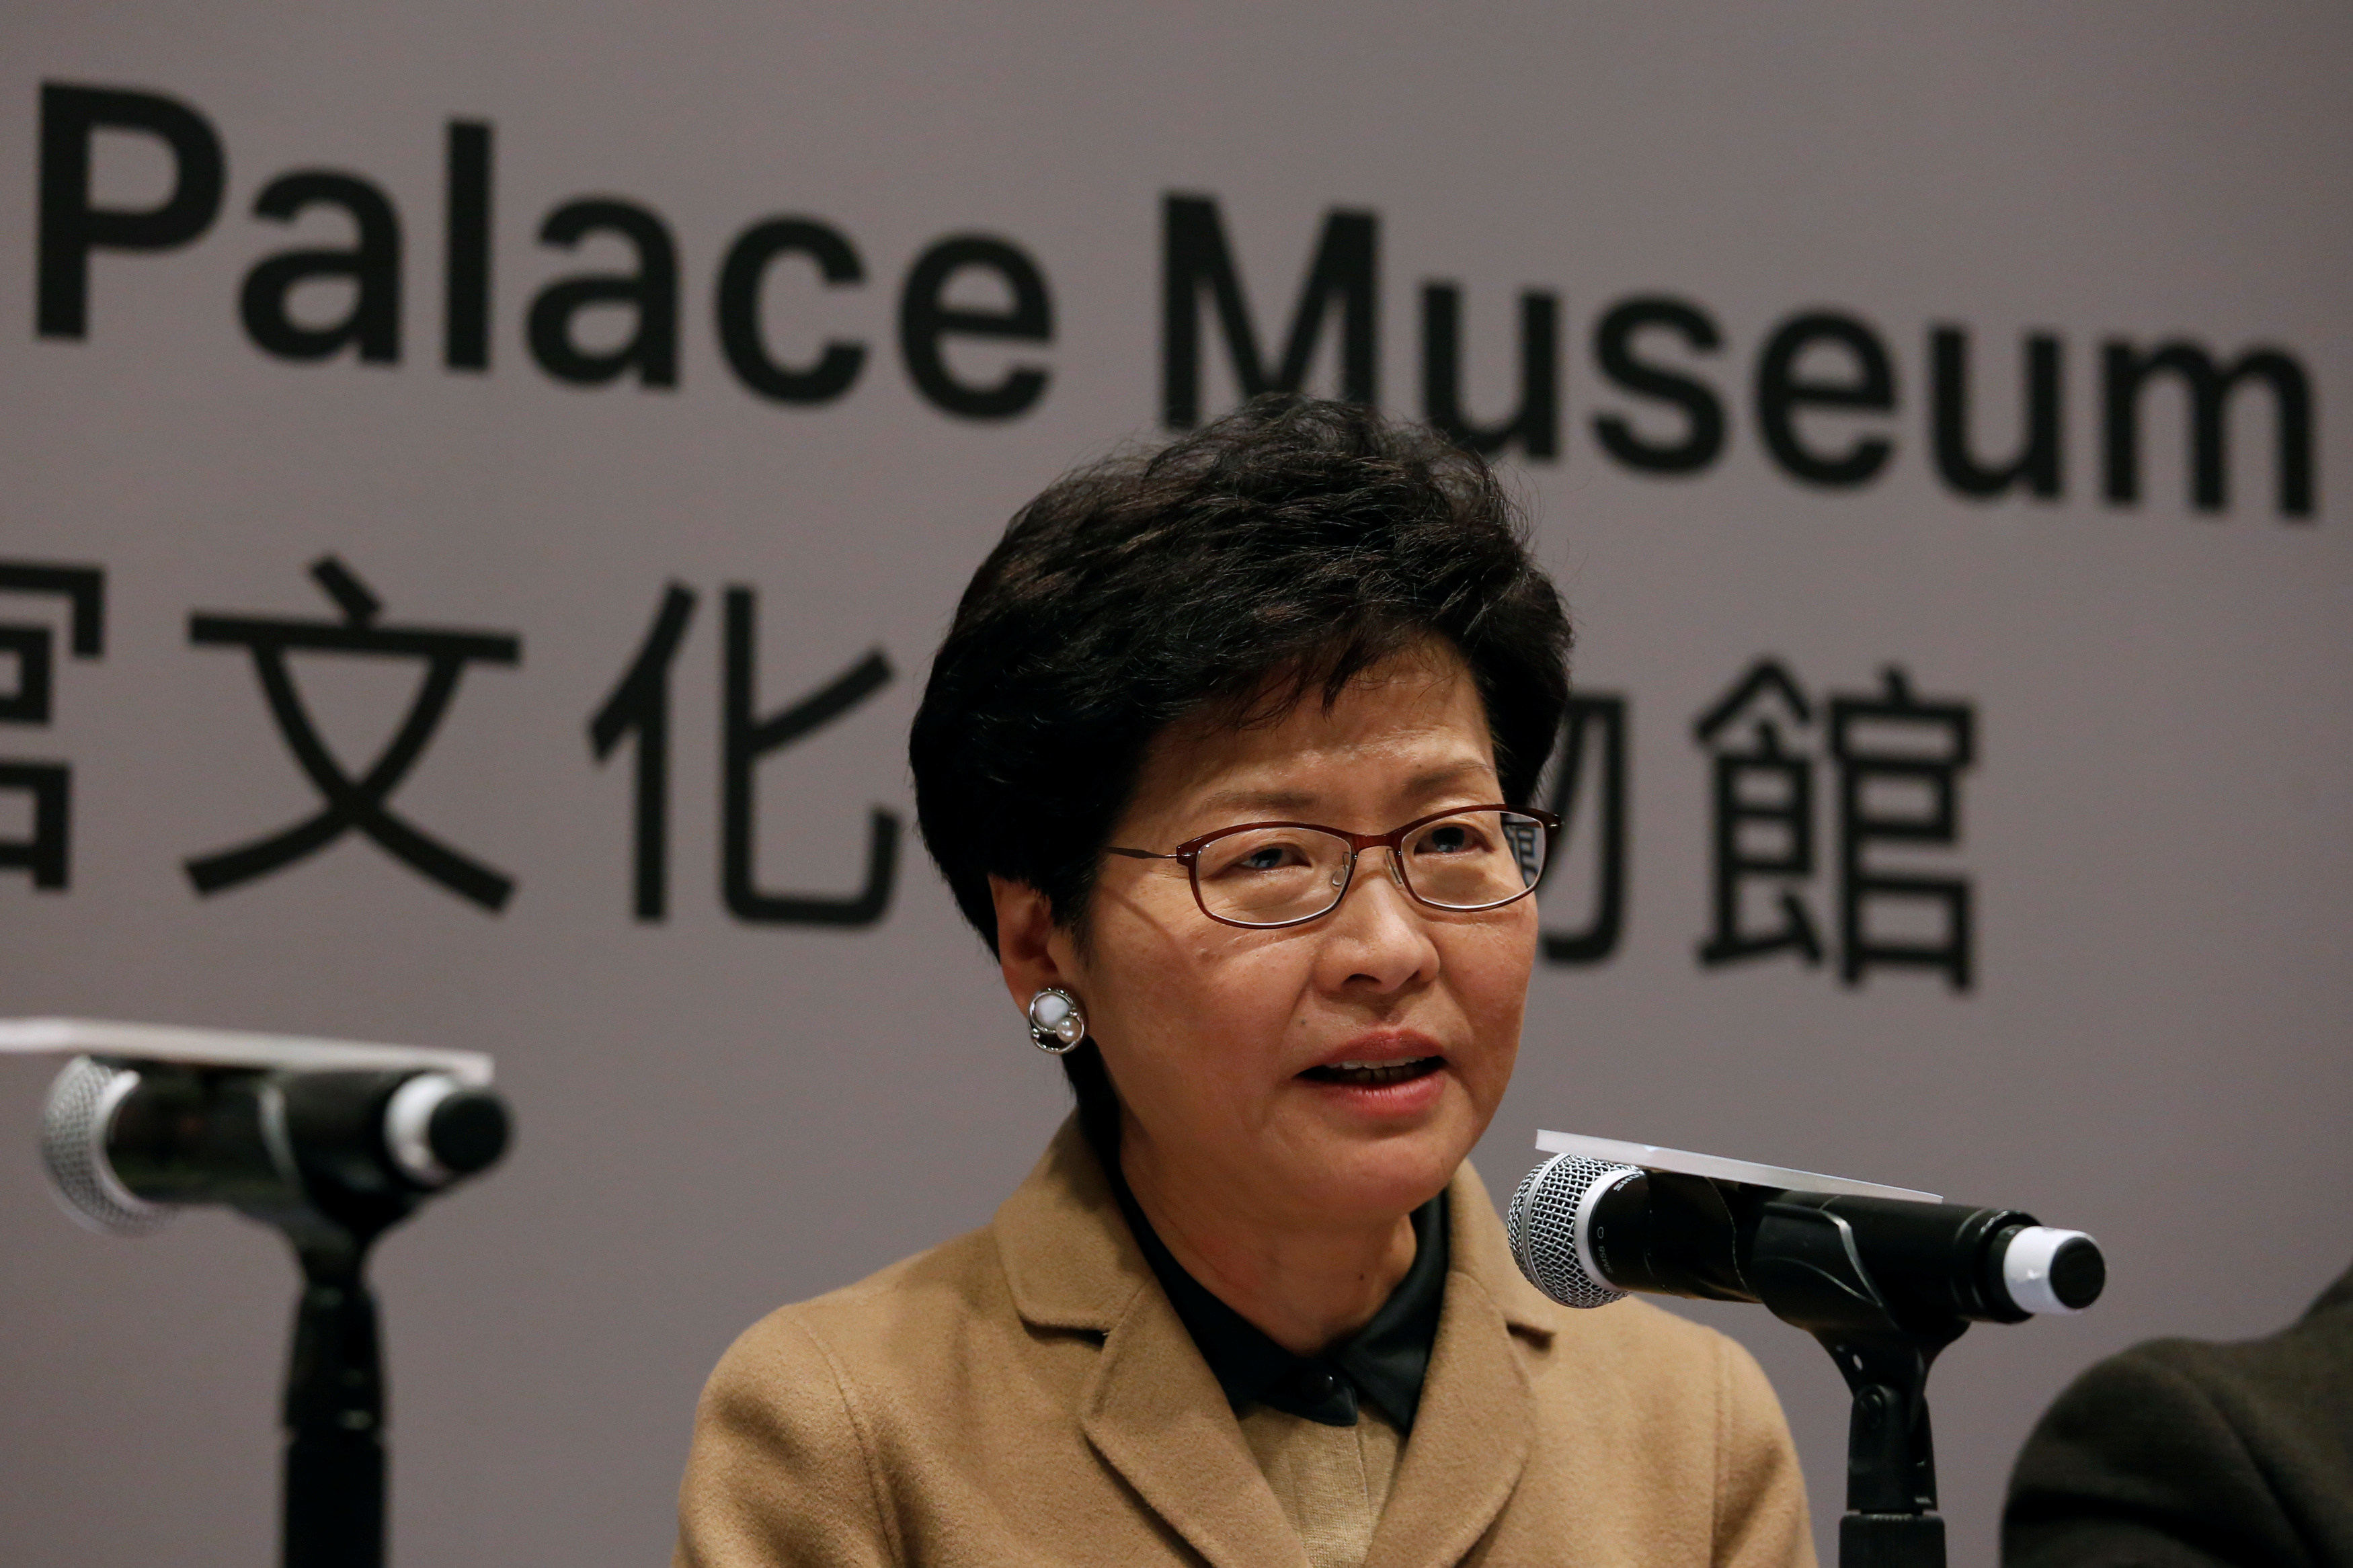 Hong Kong Chief Secretary Carrie Lam speaks during a news conference on a branch of Beijing's Palace Museum to be built in Hong Kong, China, January 10, 2017. REUTERS/Bobby Yip - RTX2Y9SK